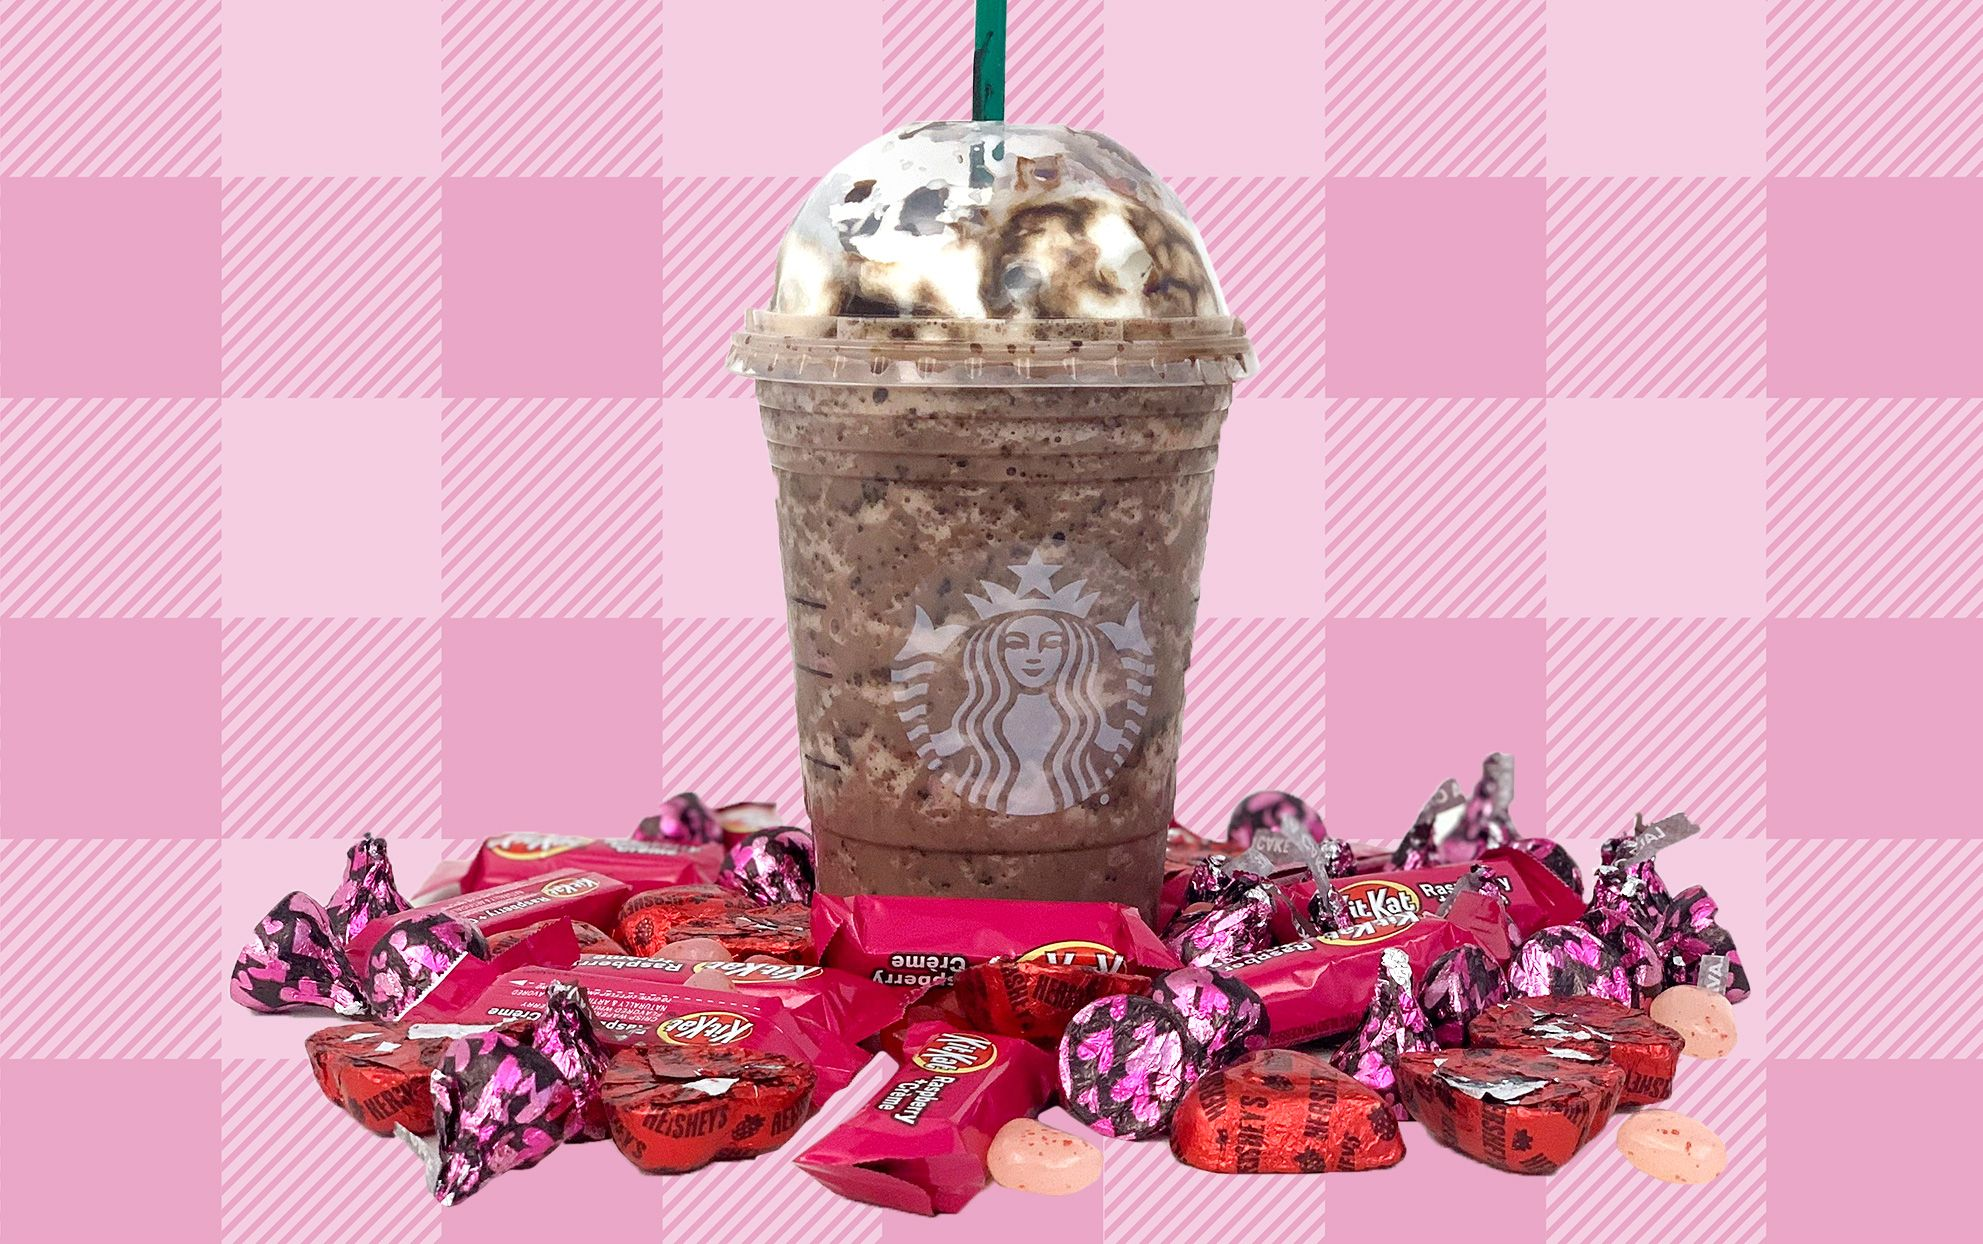 Starbucks Has a ChocolateCovered Strawberry Drink on the